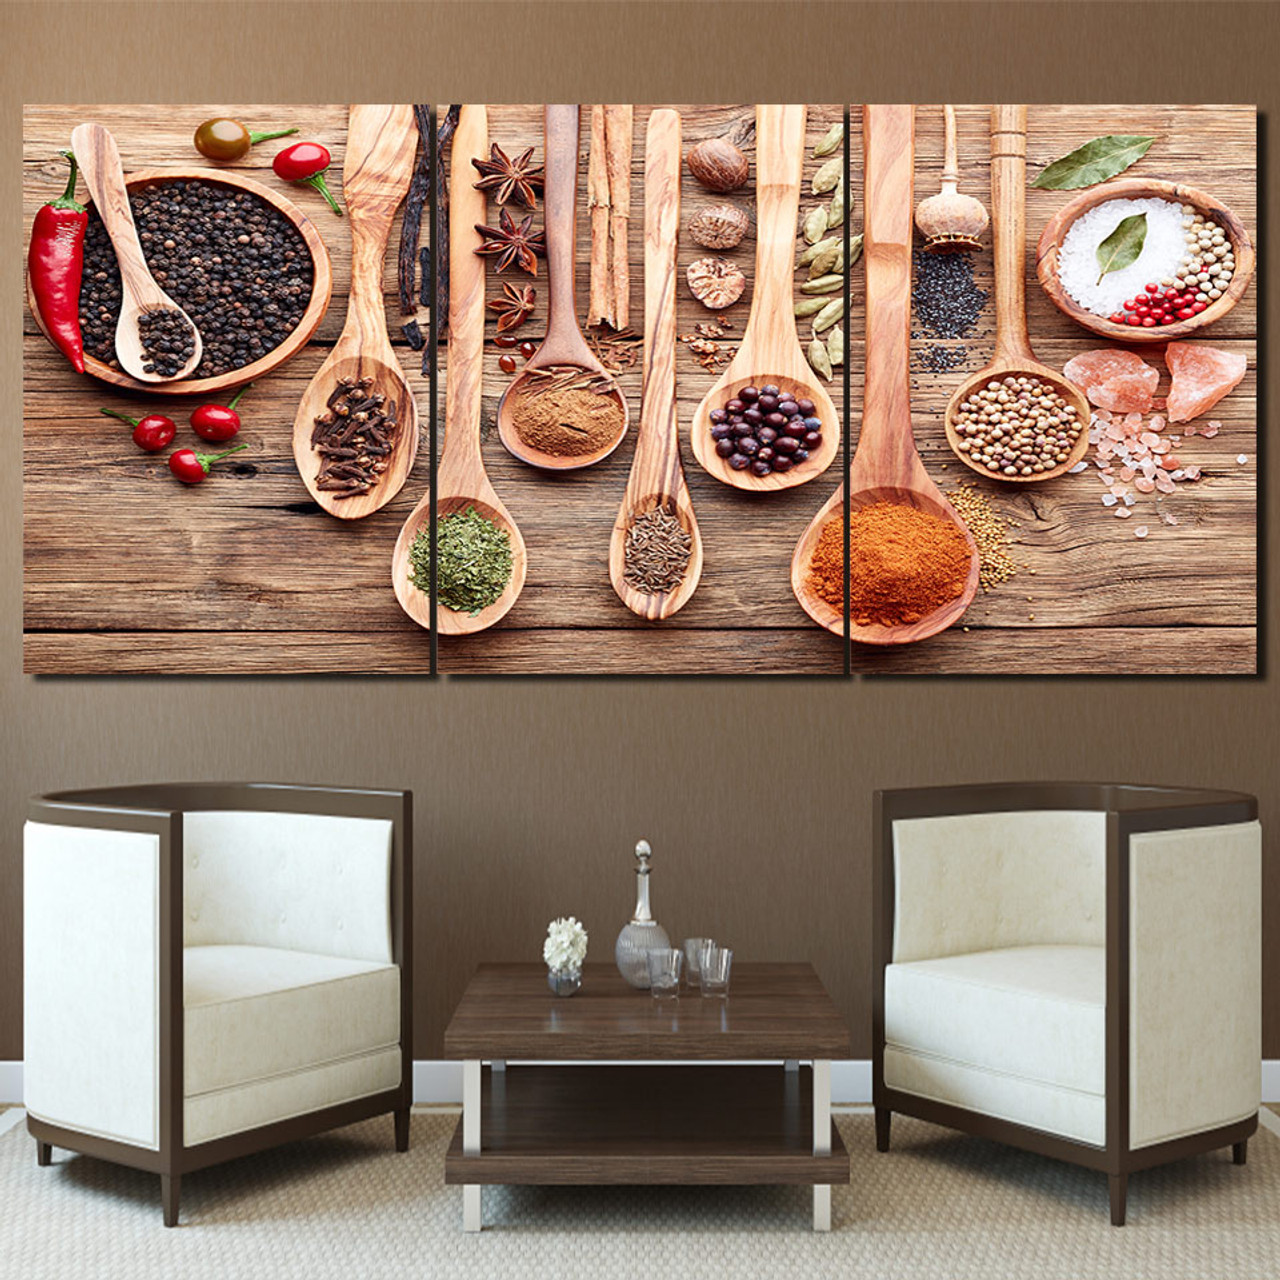 Modern Hd Prints Poster Framework For Living Room Wall Art Food Pictures 3 Piece Spoon Grains Spices Canvas Paintings Home Decor Onshopdeals Com